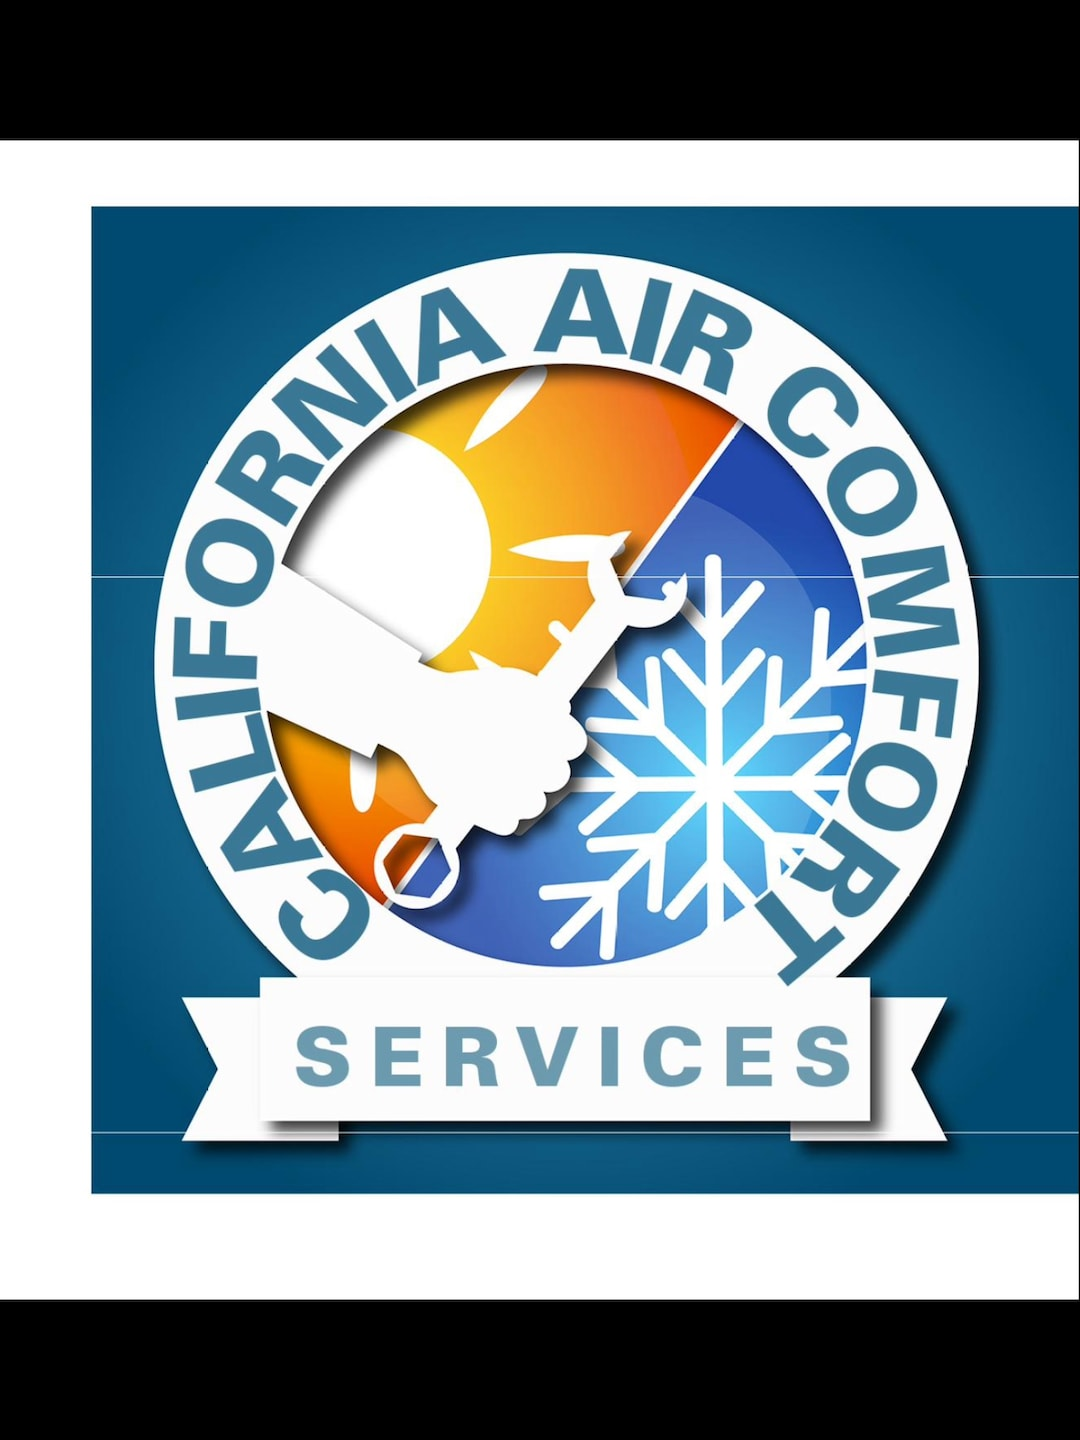 California Air Comfort